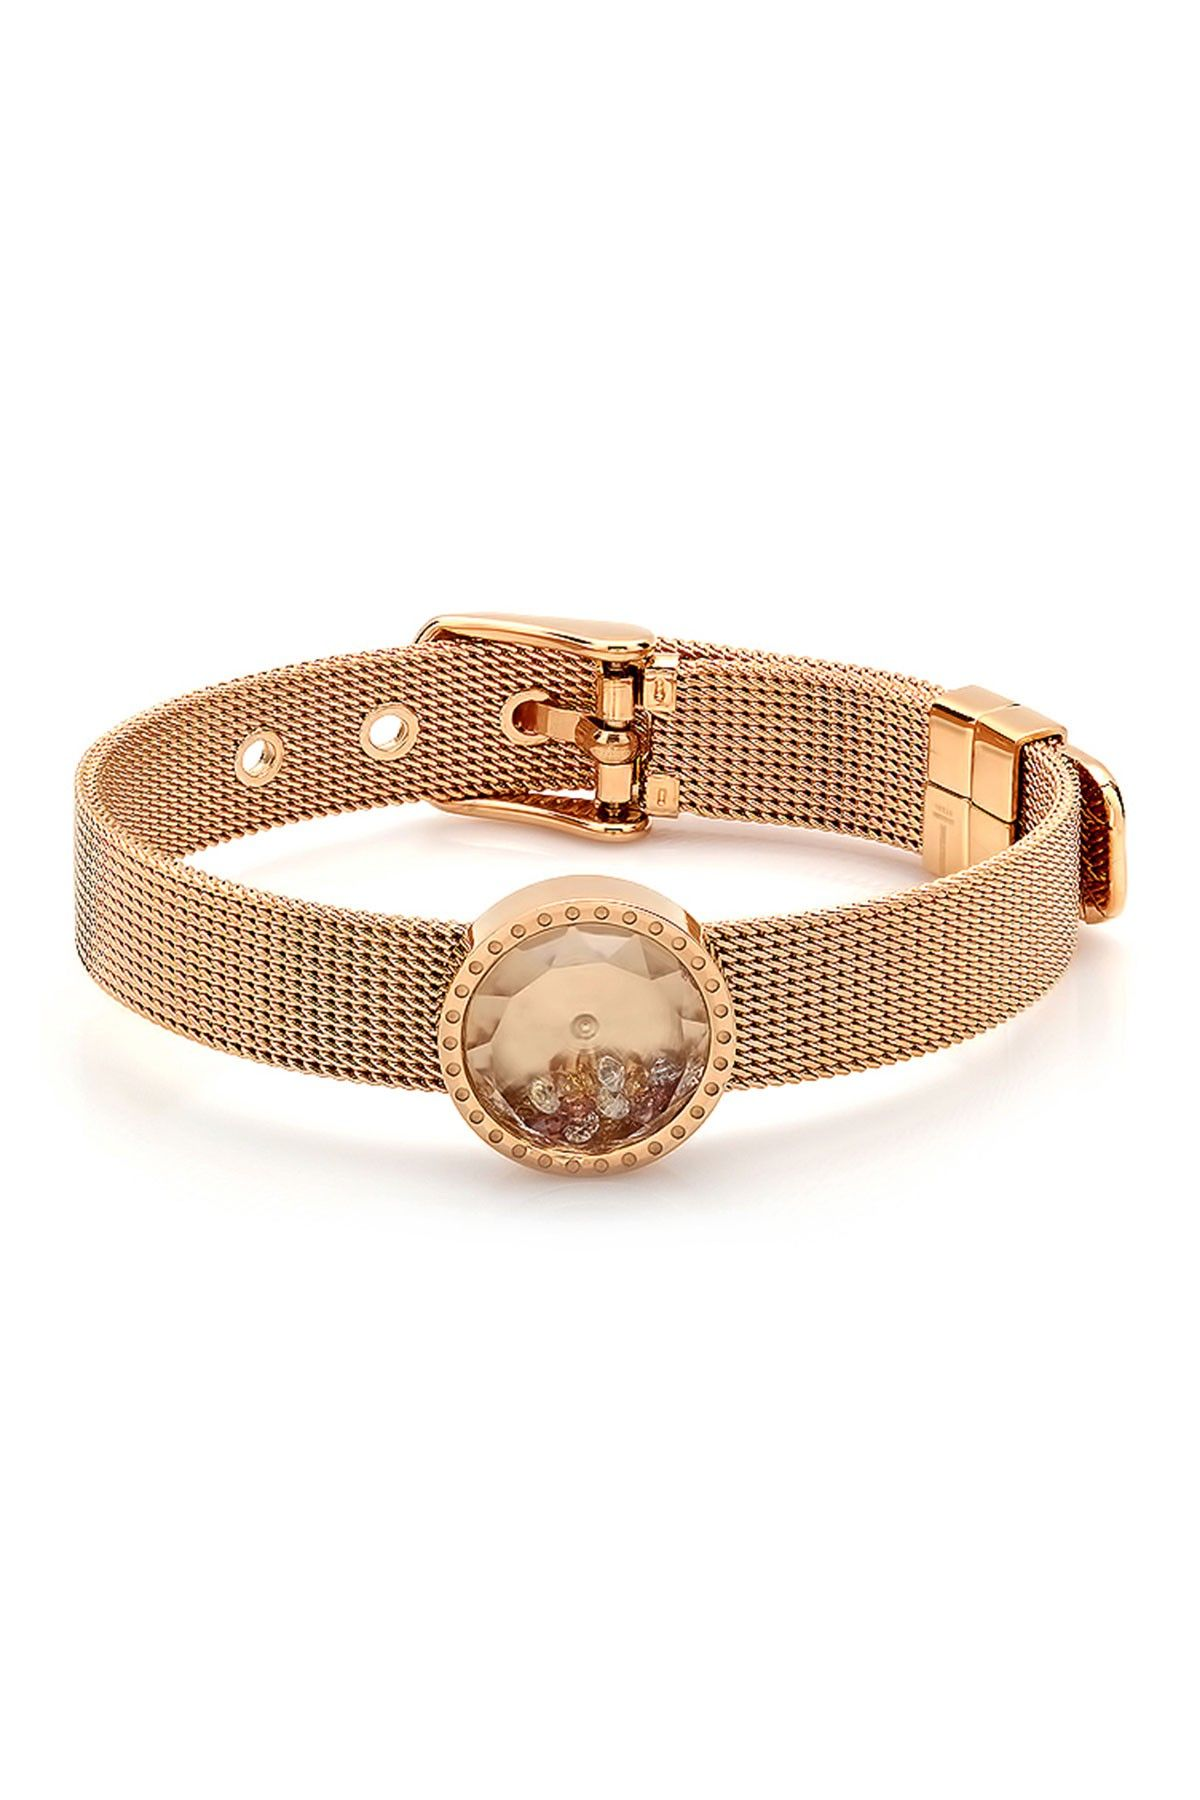 K rose gold plated stainless steel swarovski crystals watch